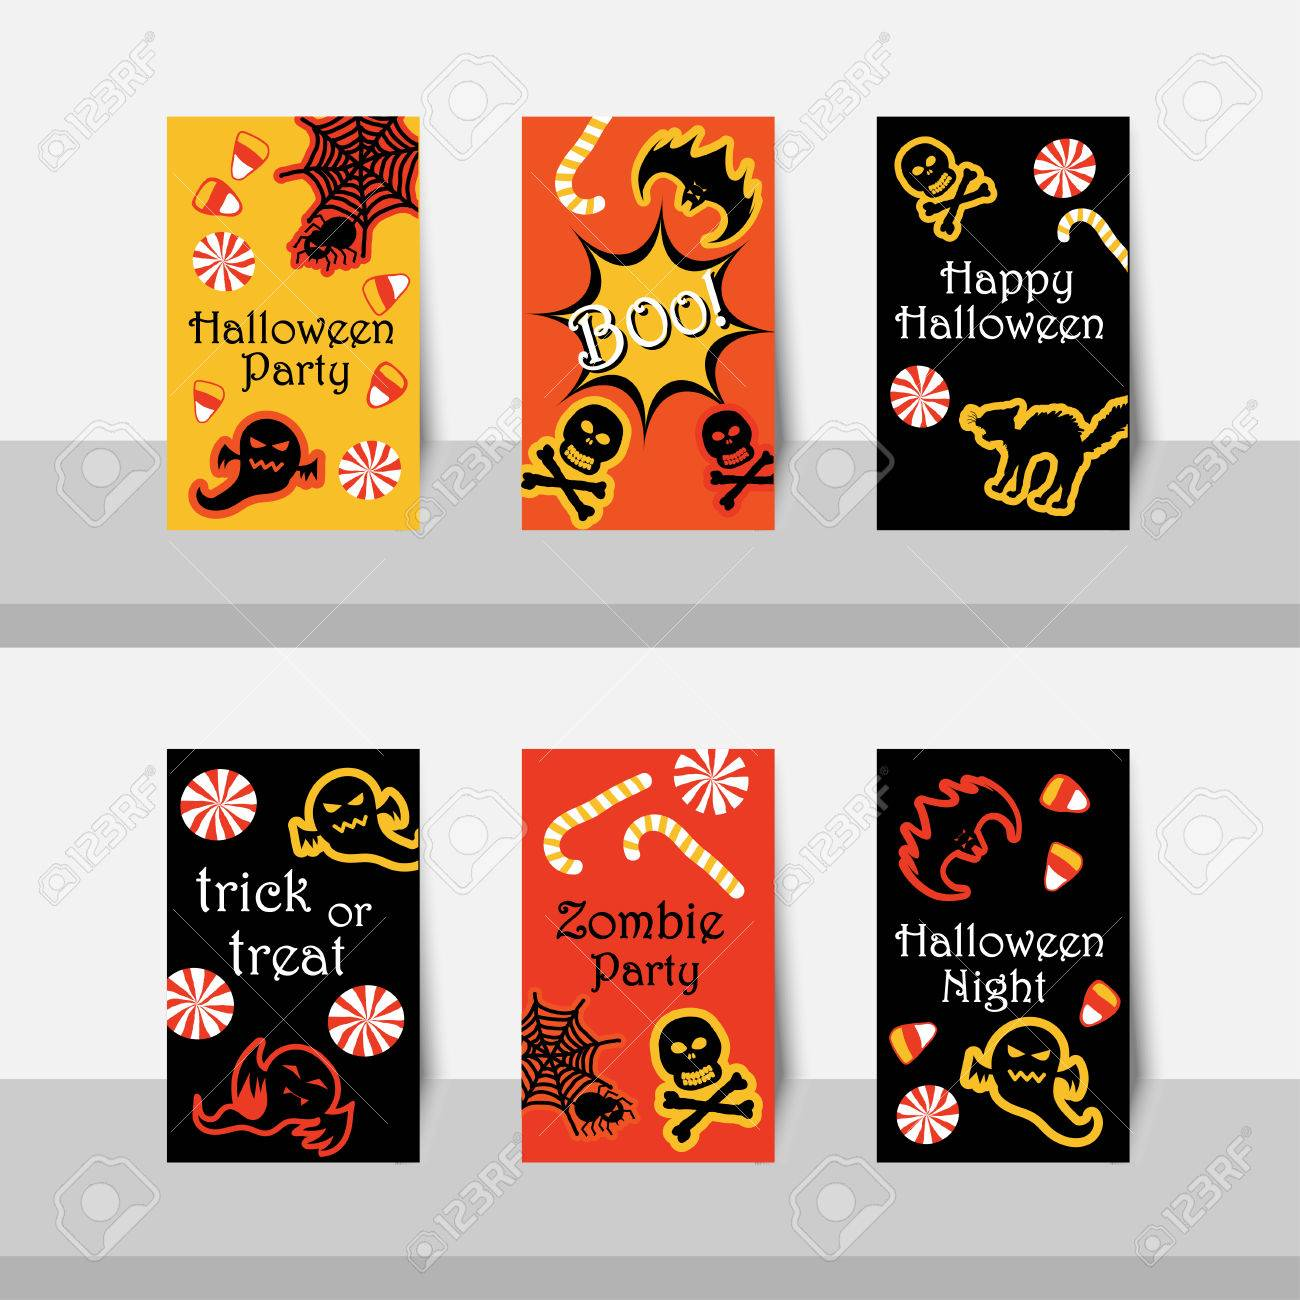 Set Of Halloween Small Cards Party, Happy Halloween Night, Trick Or Treat,  In